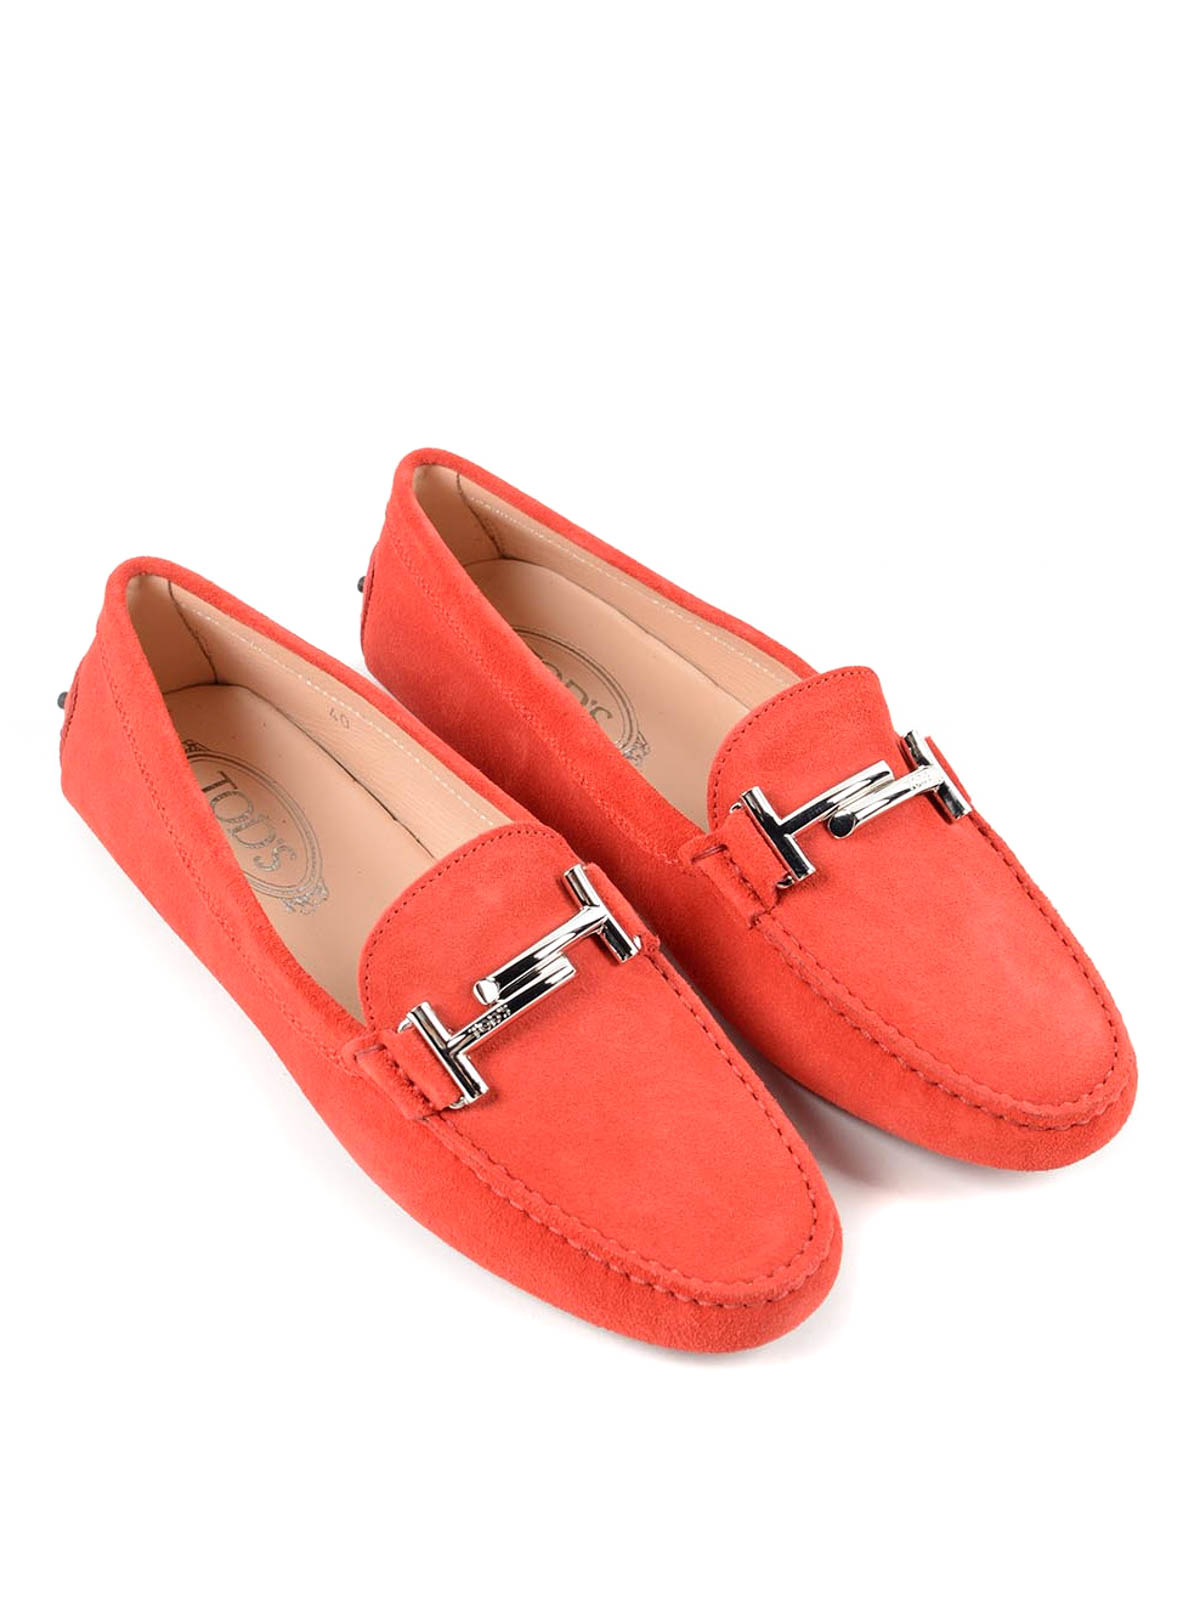 4b9307fdba2 Tod S - Gommini Maxi Double T loafers - Loafers   Slippers ...